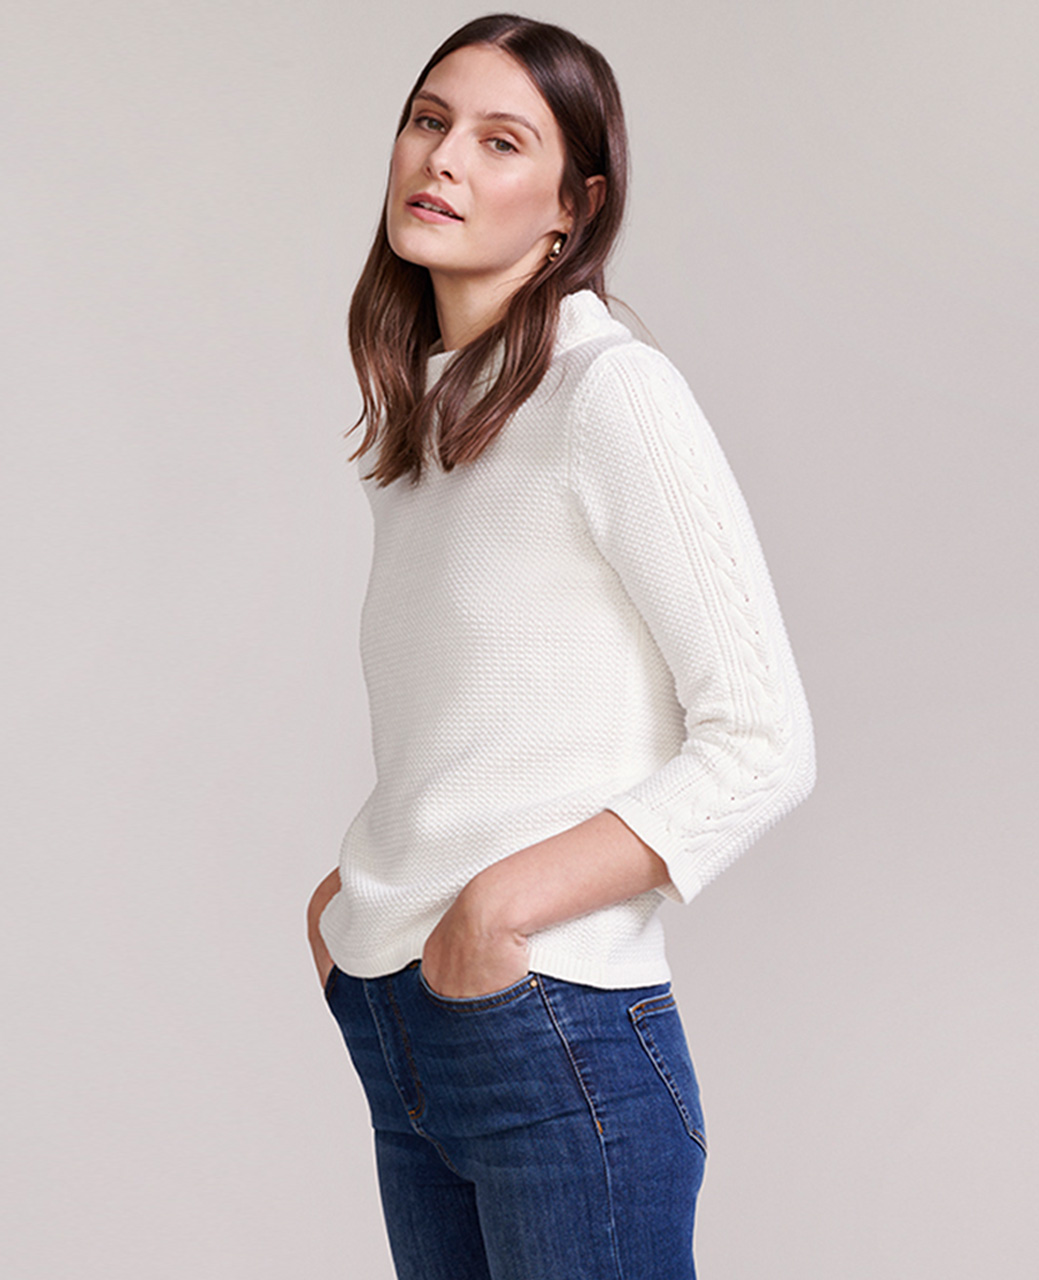 Ivory Jumper Outfit